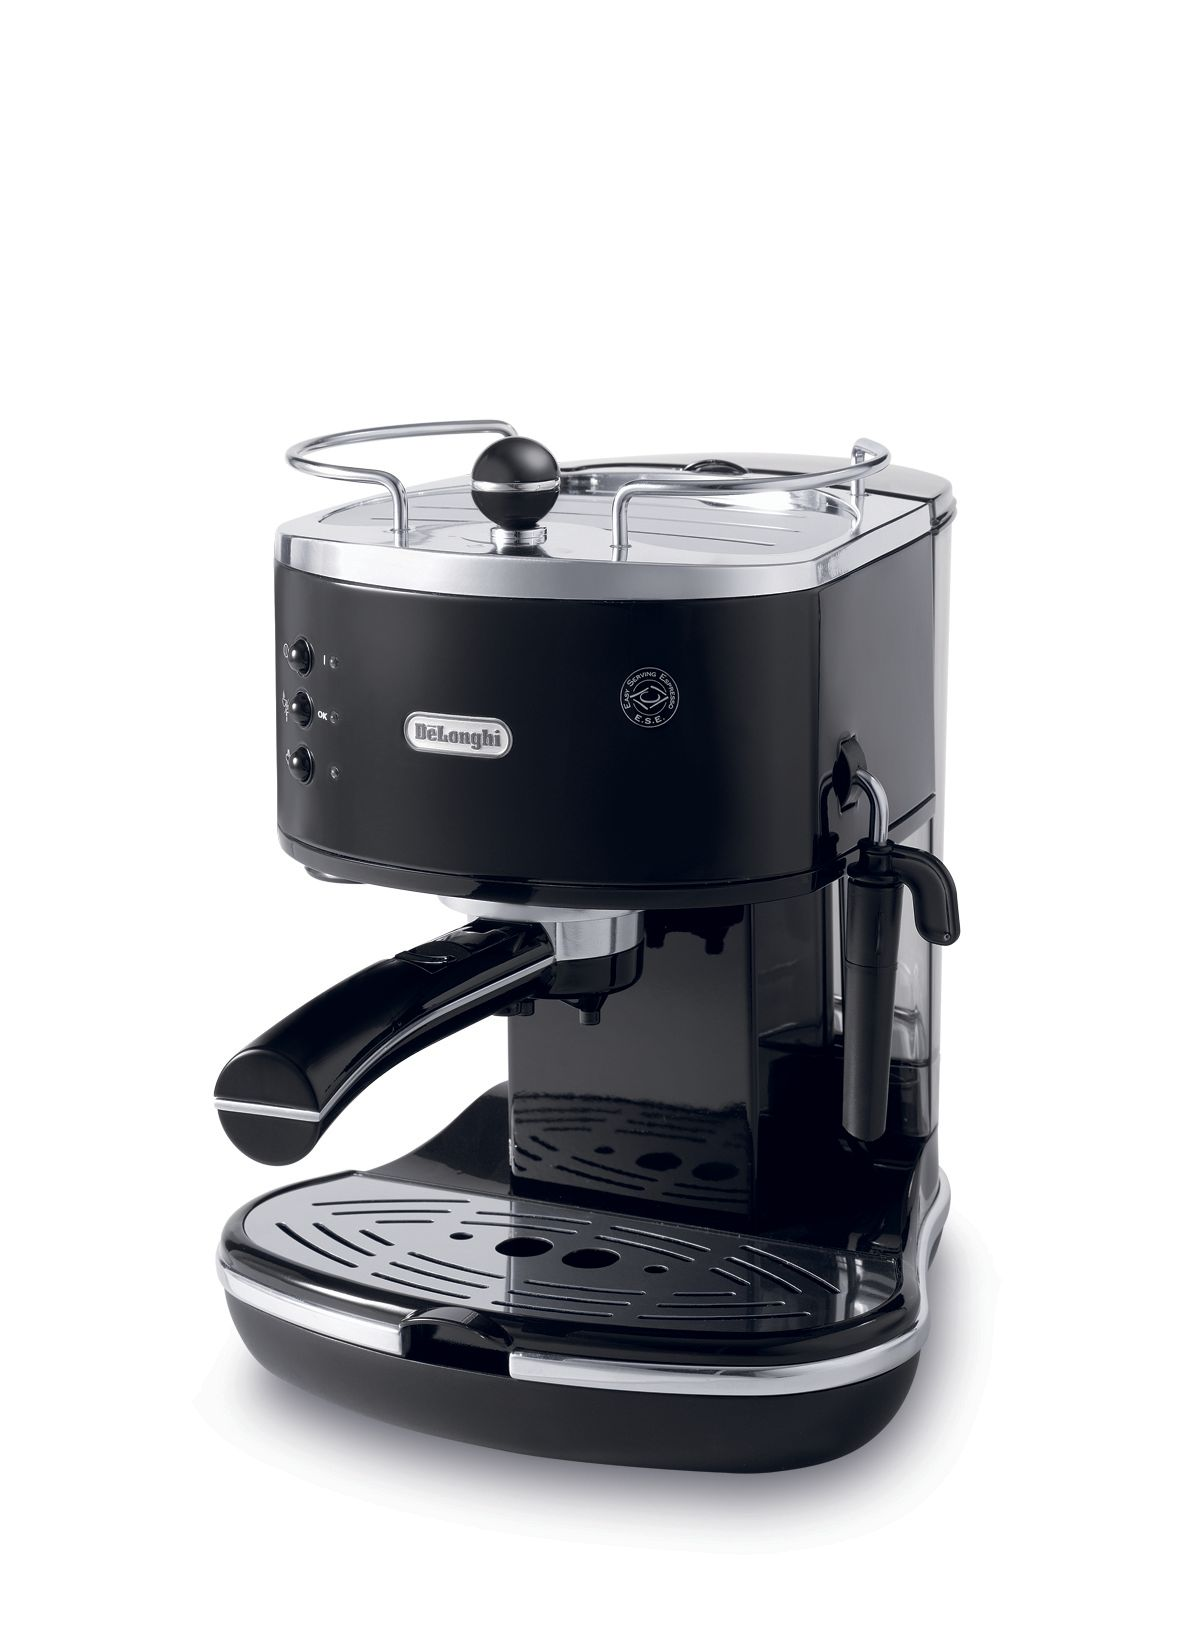 Black Icona Espresso Coffee Maker ECO310.OB